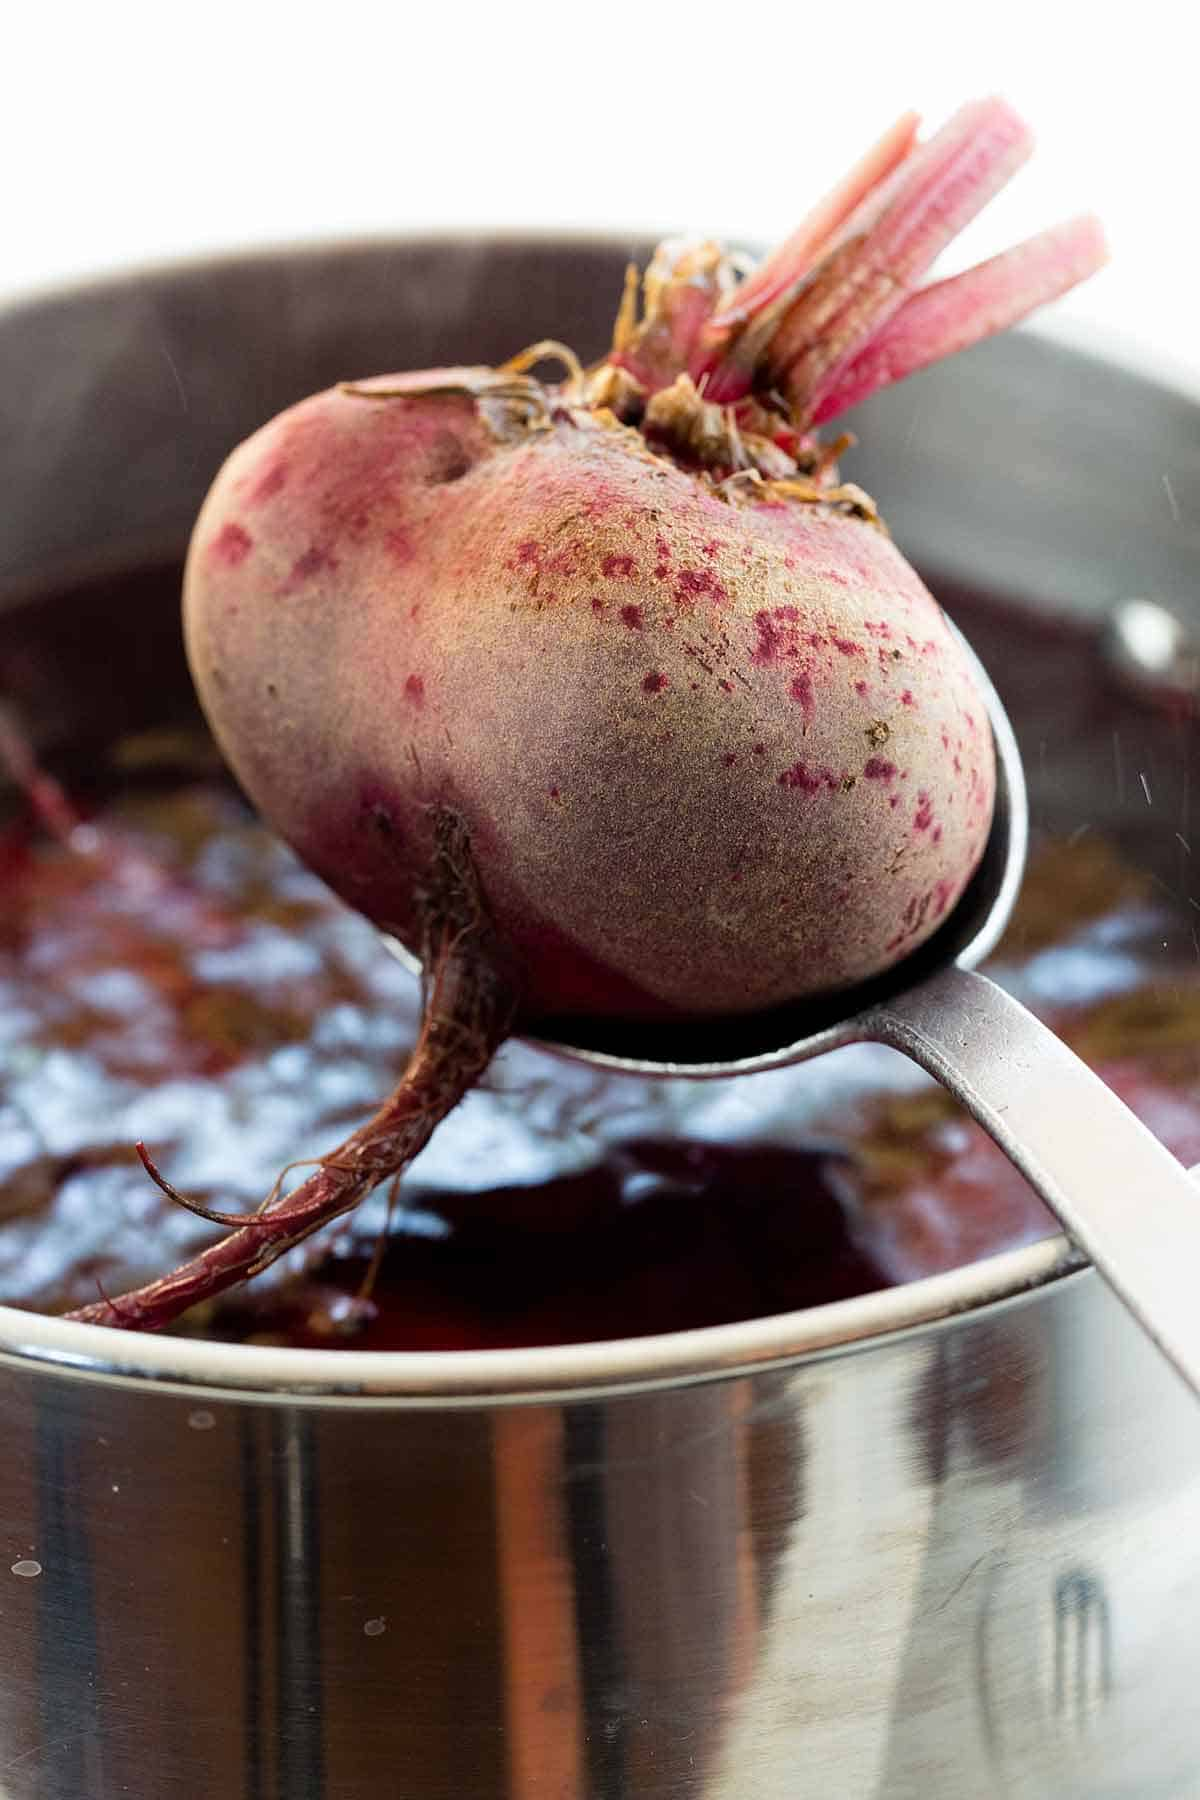 Spoon lowering a beet into boiling water